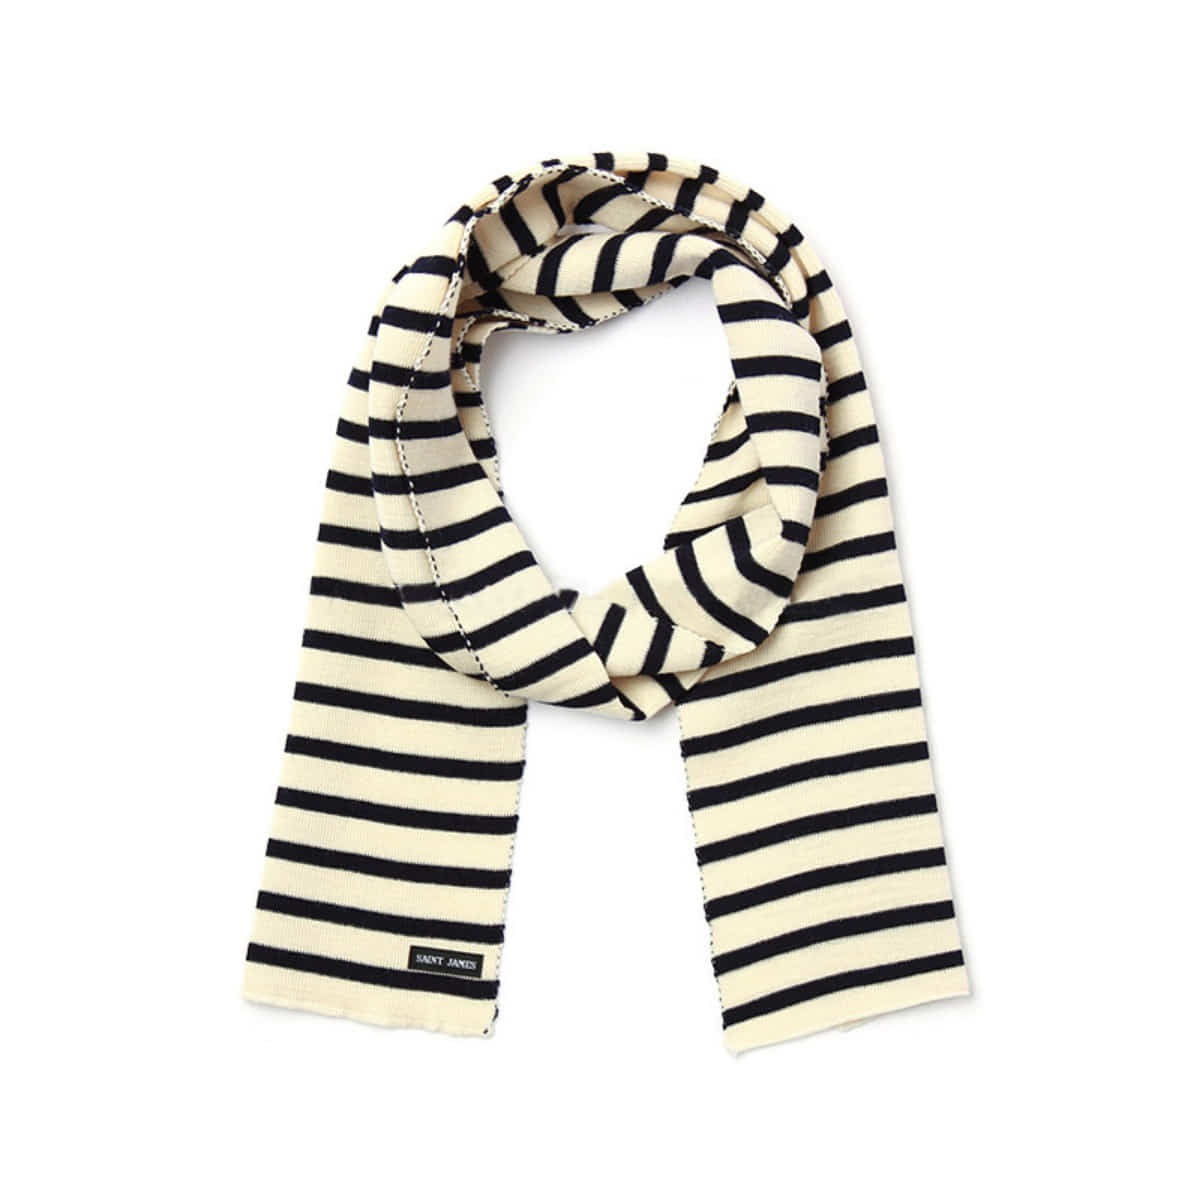 [SAINT JAMES] SCARF RAYE 'ECRU/MARINE'